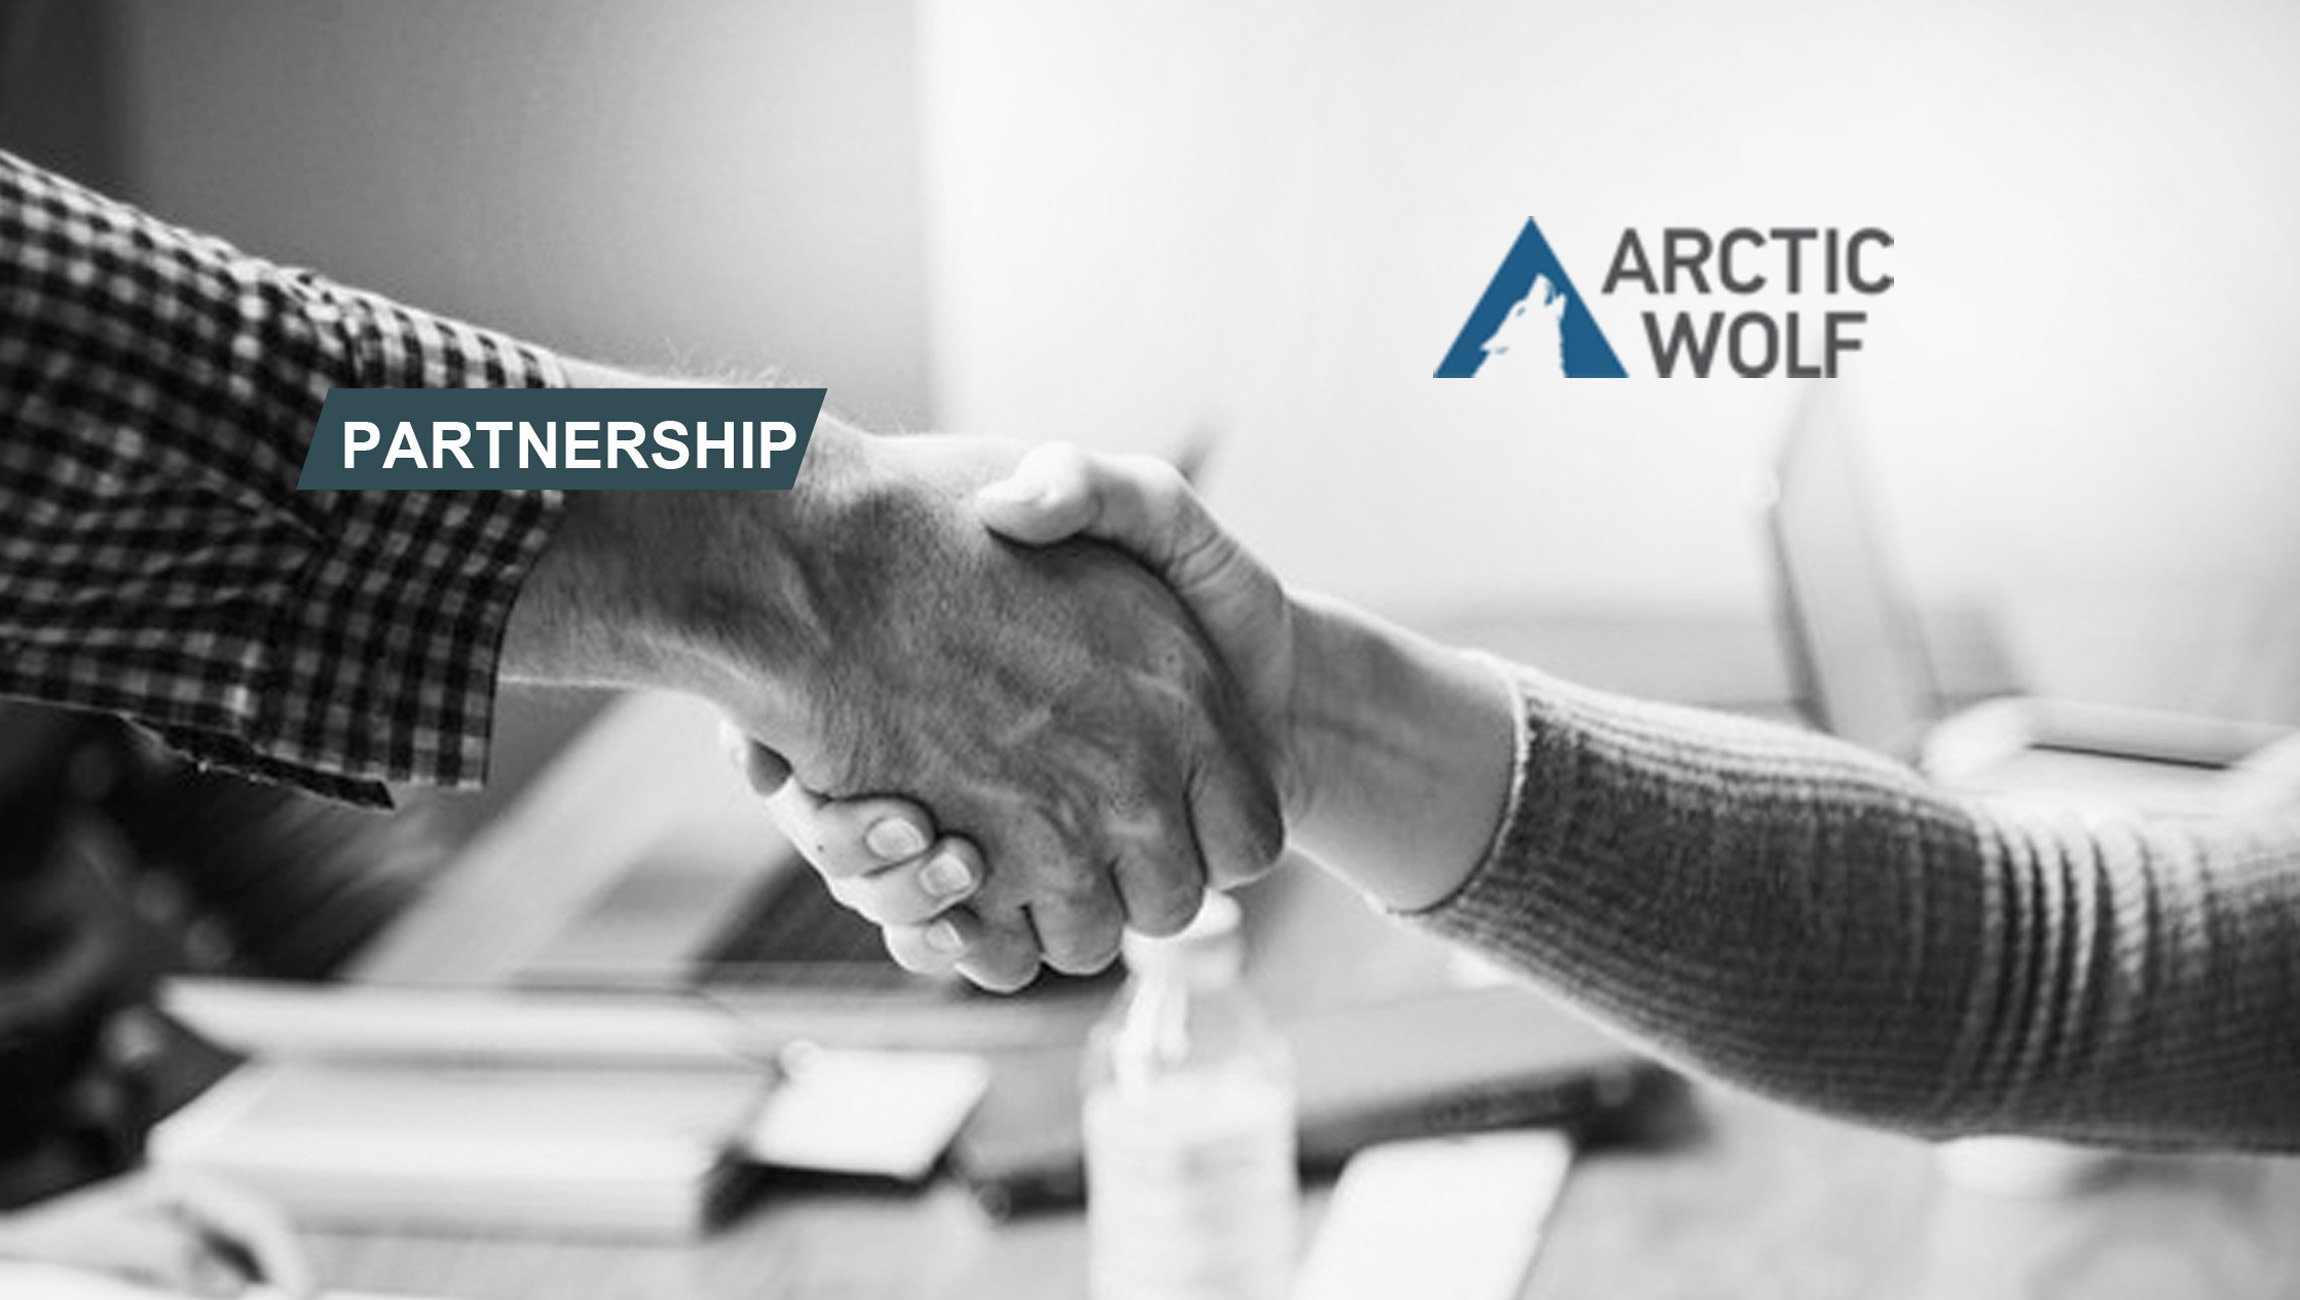 Arctic-Wolf-Evolves-Channel-Partner-Program-to-Support-Explosive-Growth